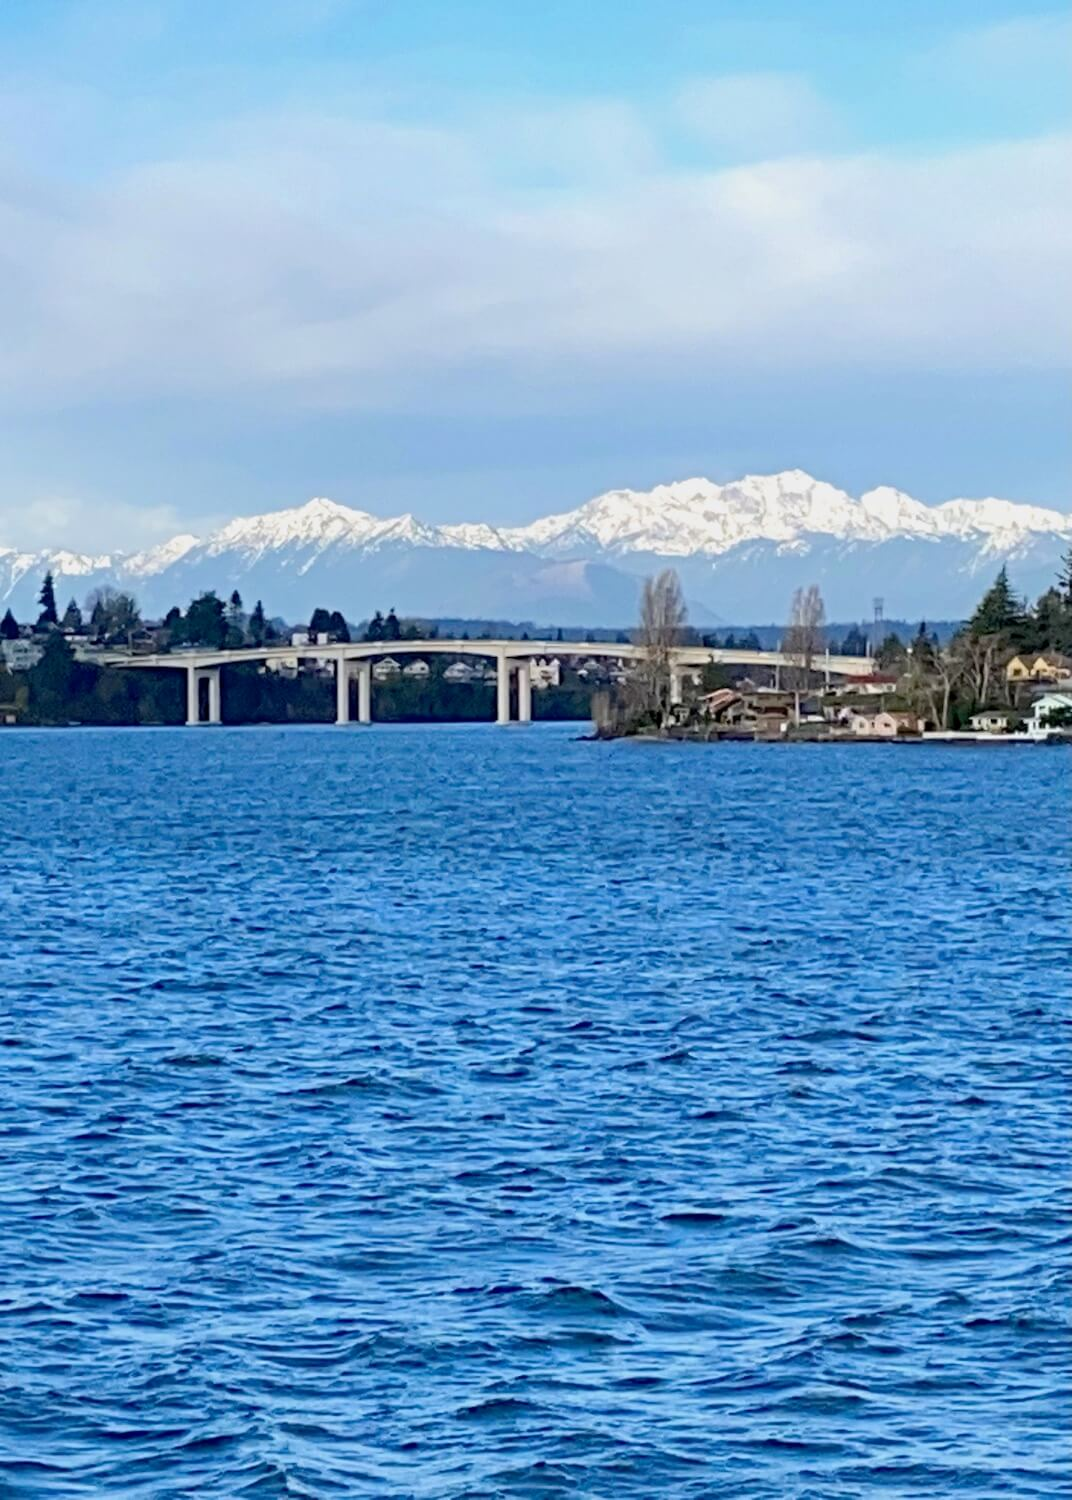 A view of the rising Olympic Mountains from a Washington State Ferry arriving at Bremerton. The mountains are covered with fresh white snow and the town below is situated on the blue water of the Salish Sea.